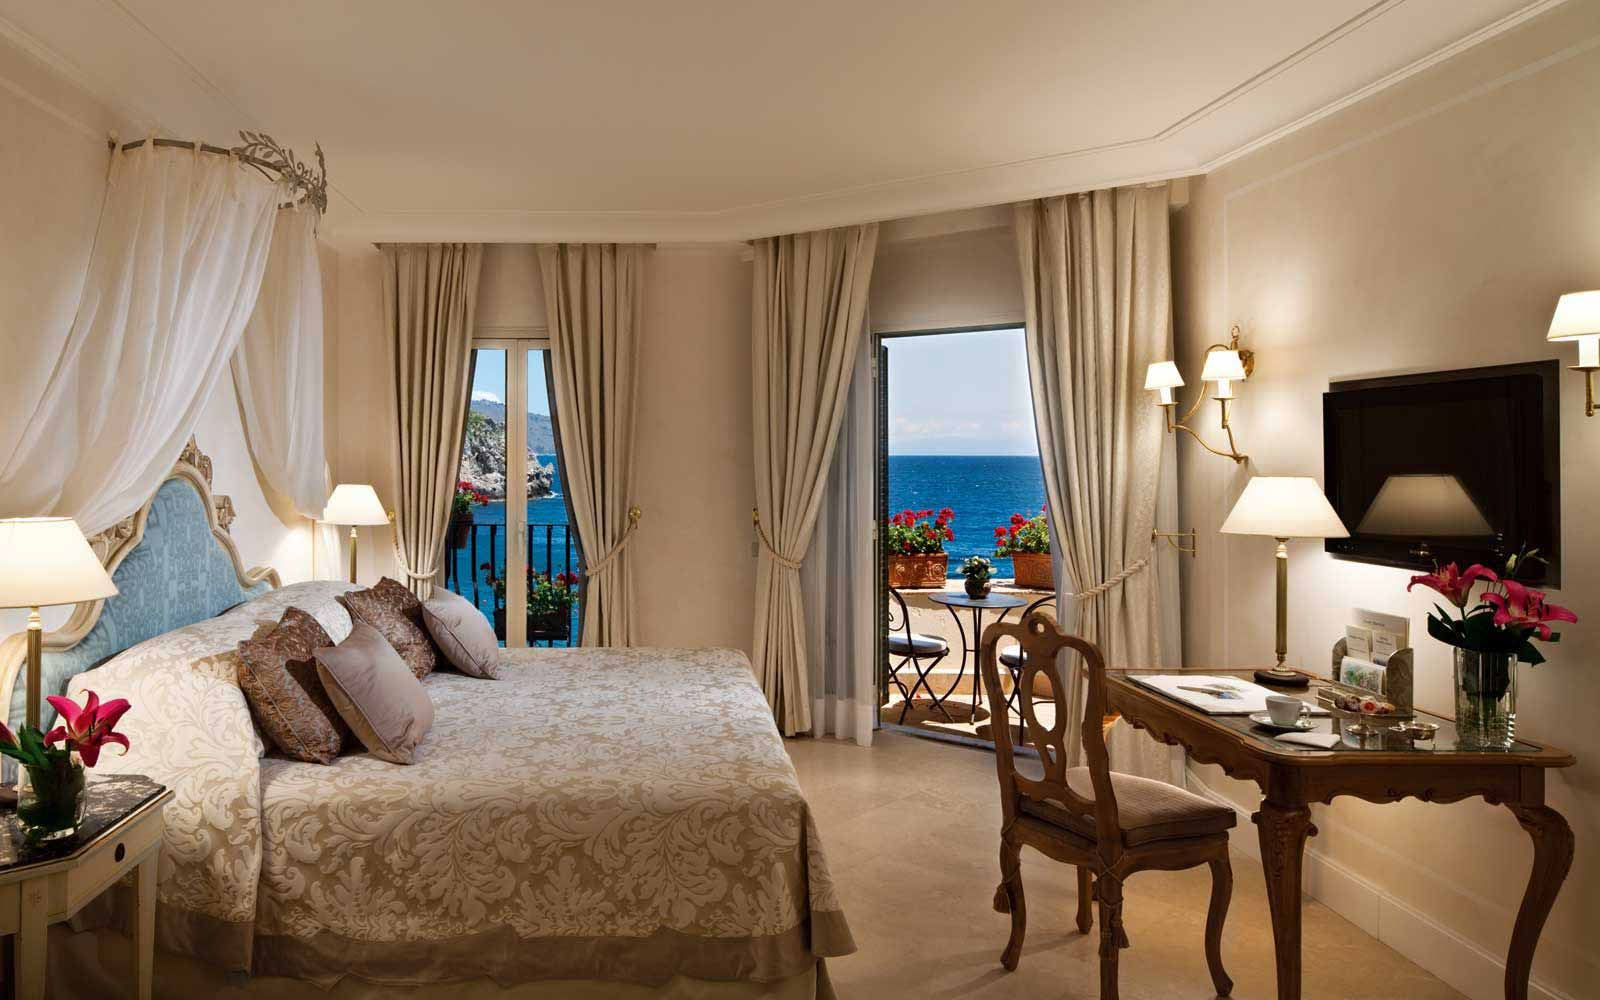 Superior Junior Suite with balcony and seaview at Belmond Villa Sant' Andrea